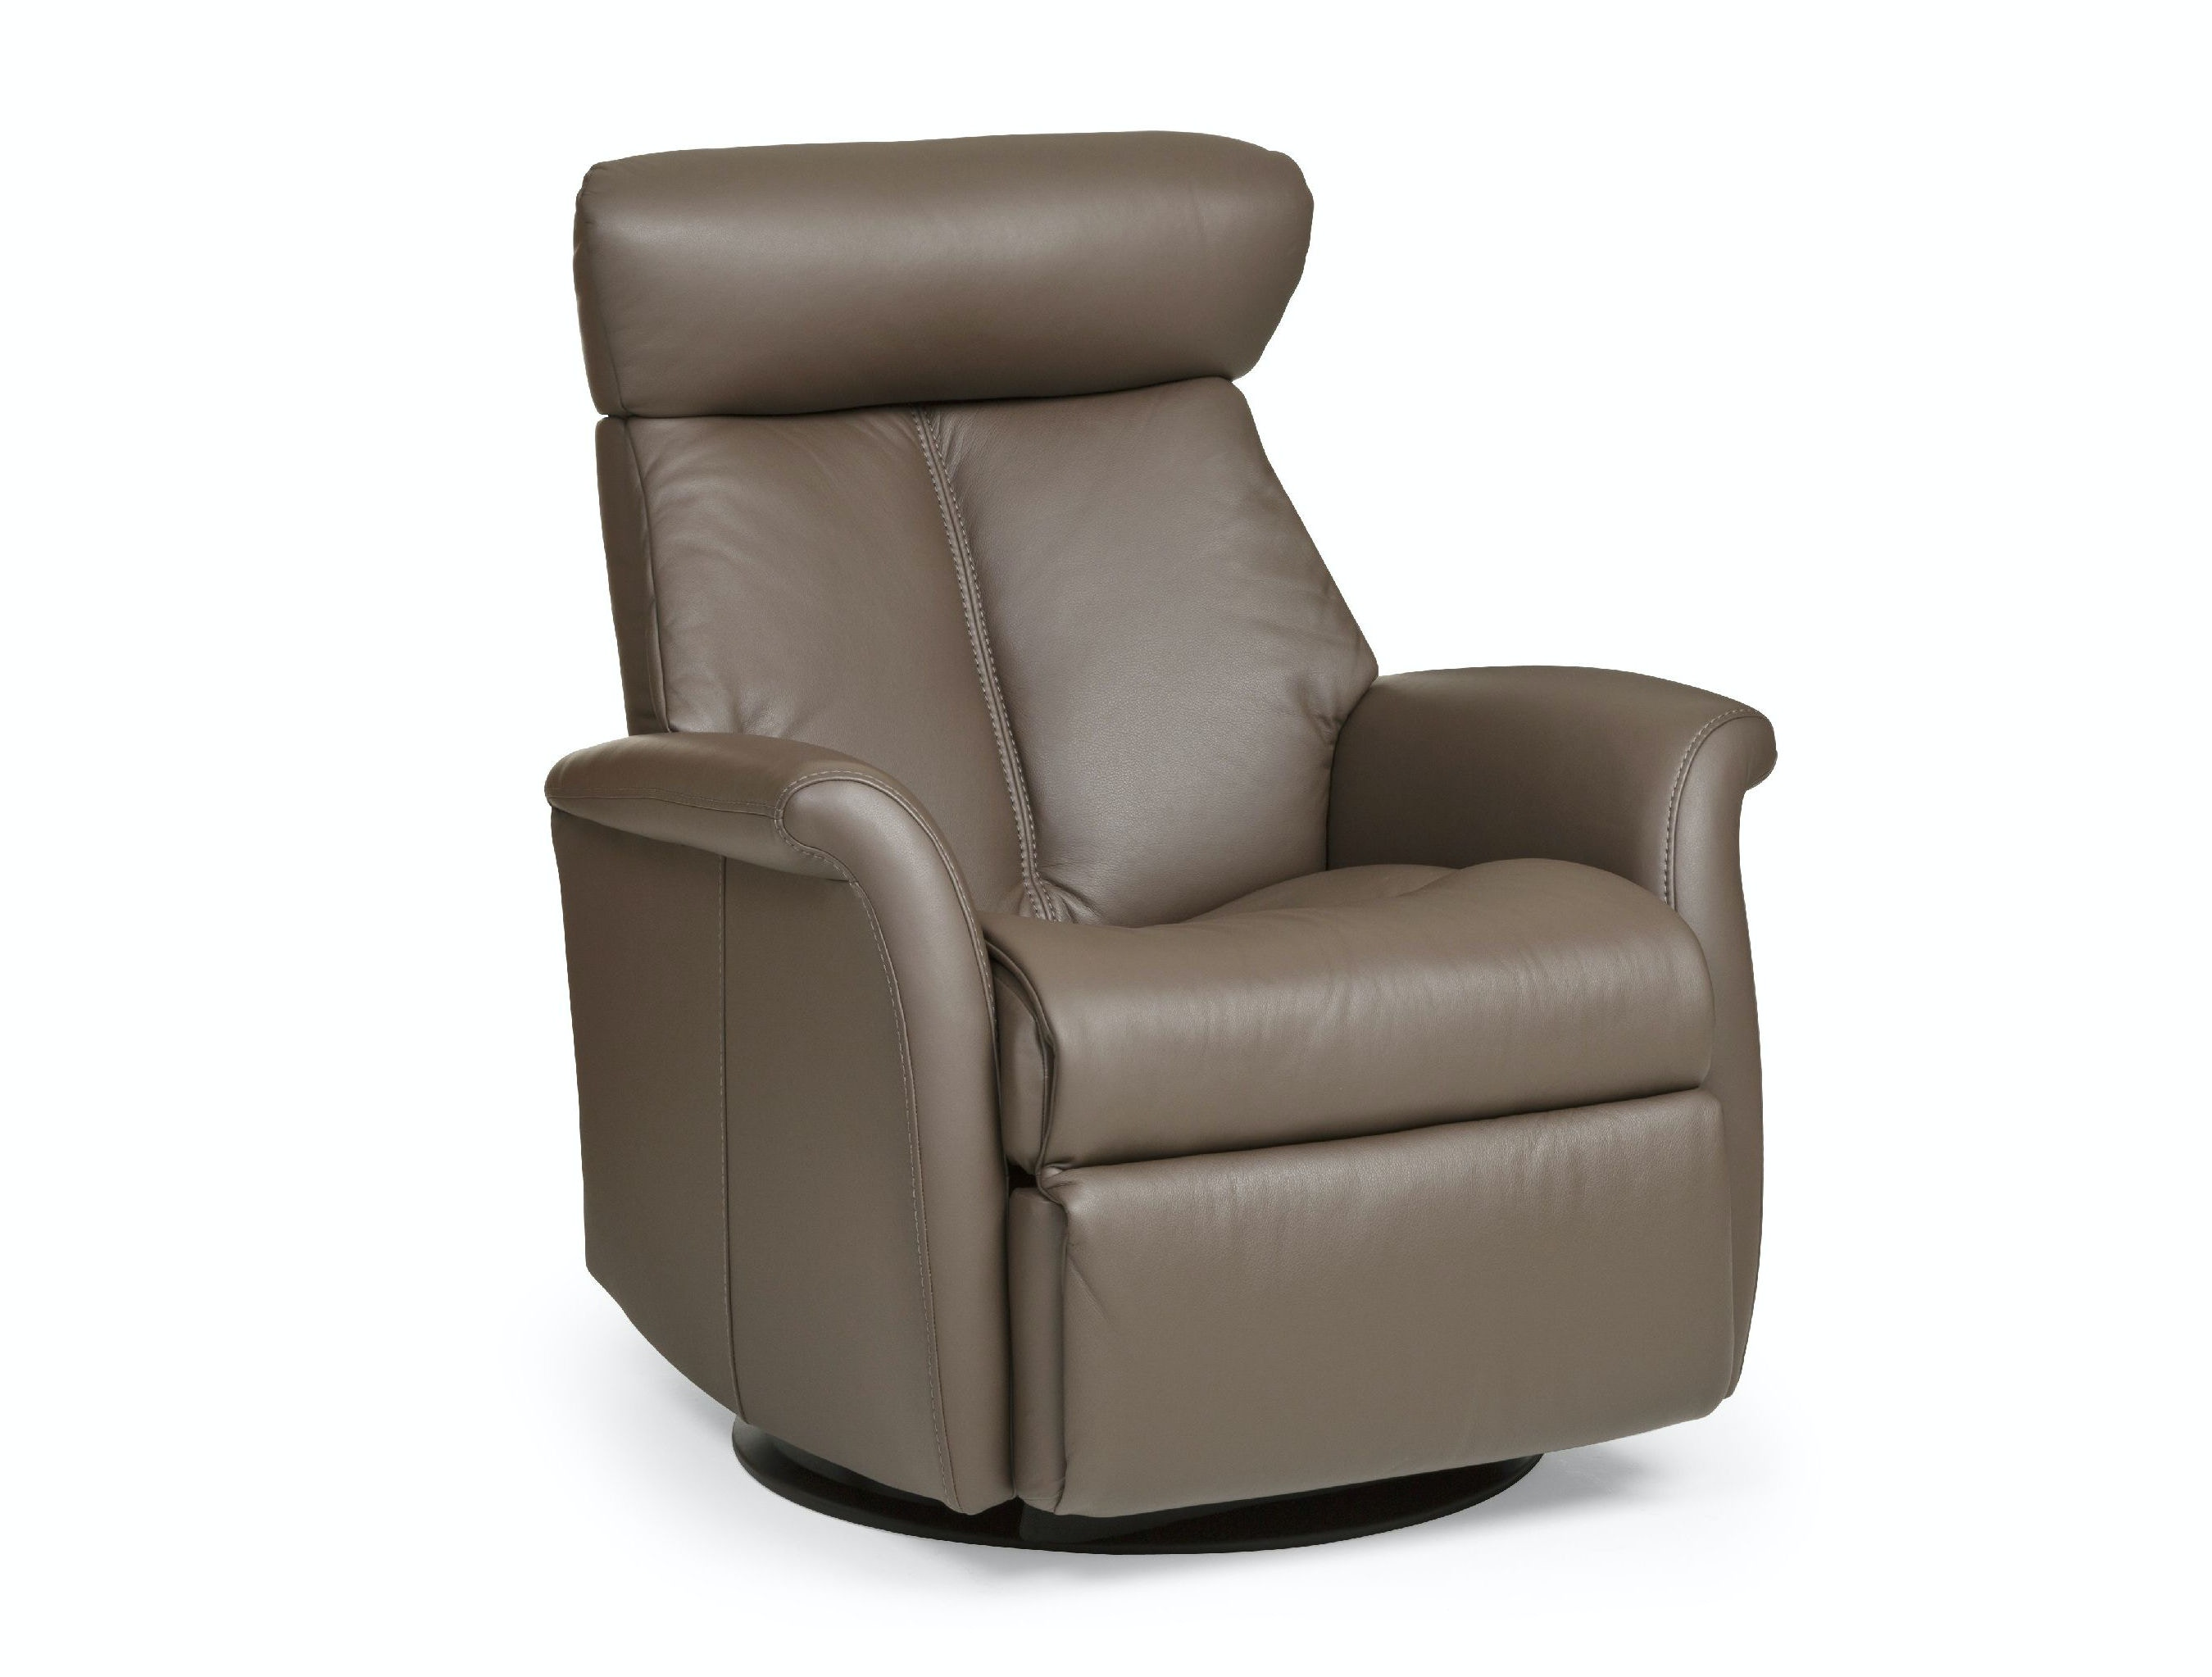 Bella Leather Power Recliner ST211765  sc 1 st  Star Furniture & Living Room Bella Leather Power Recliner islam-shia.org